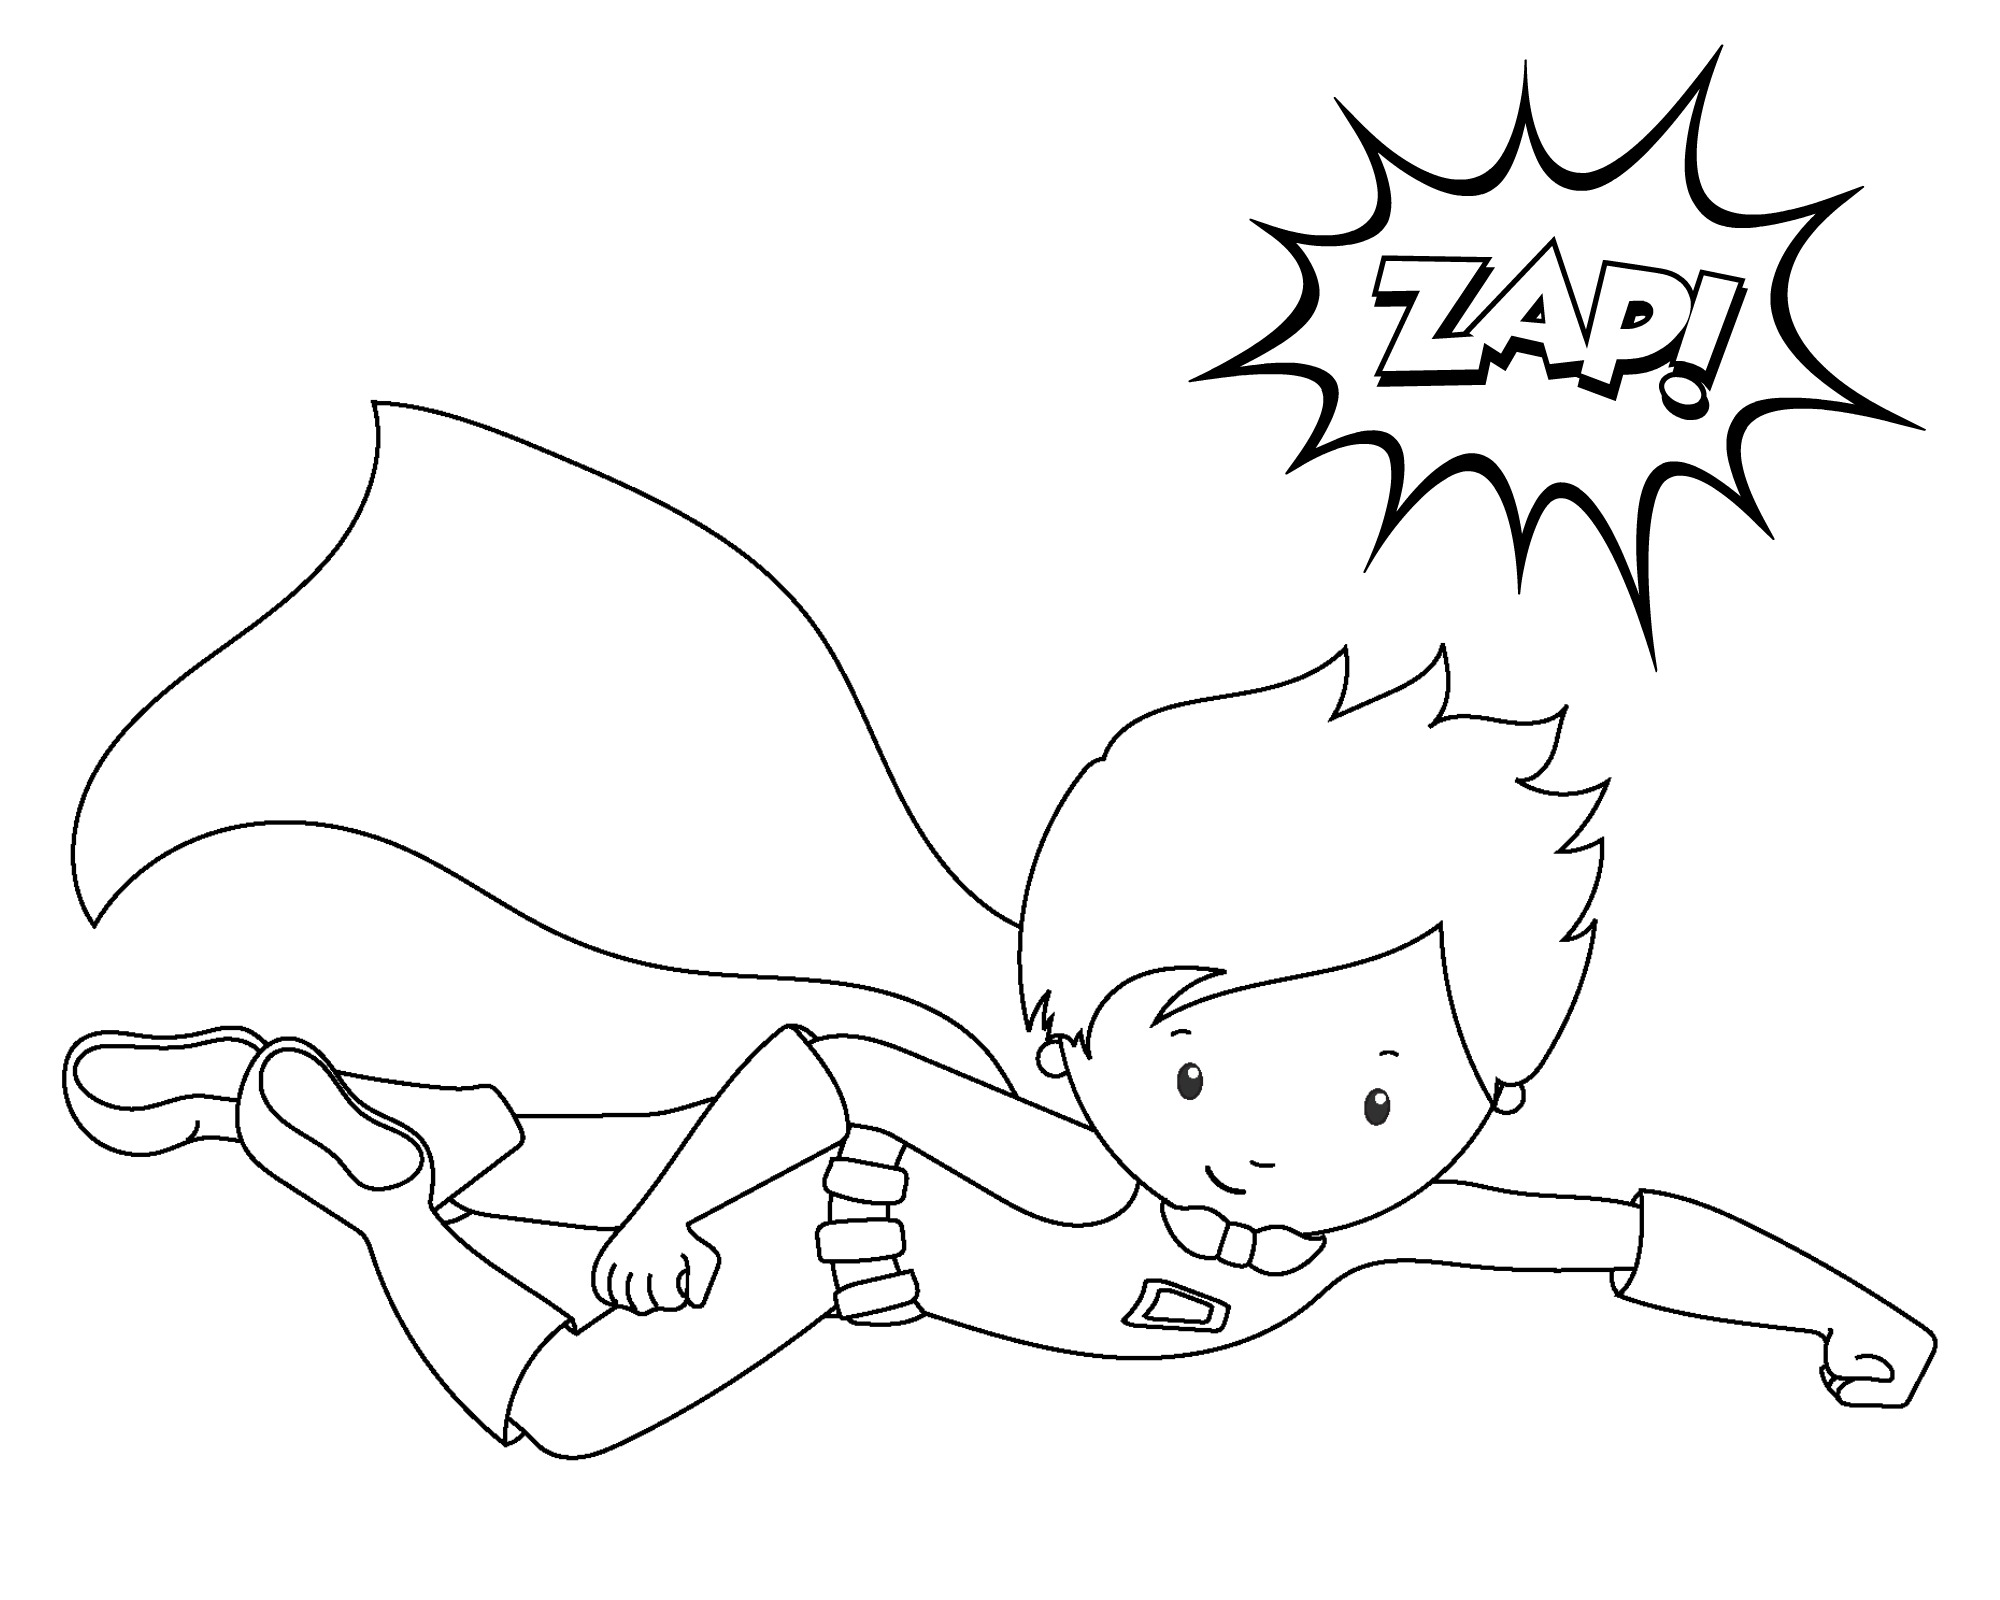 Superhero coloring sheets